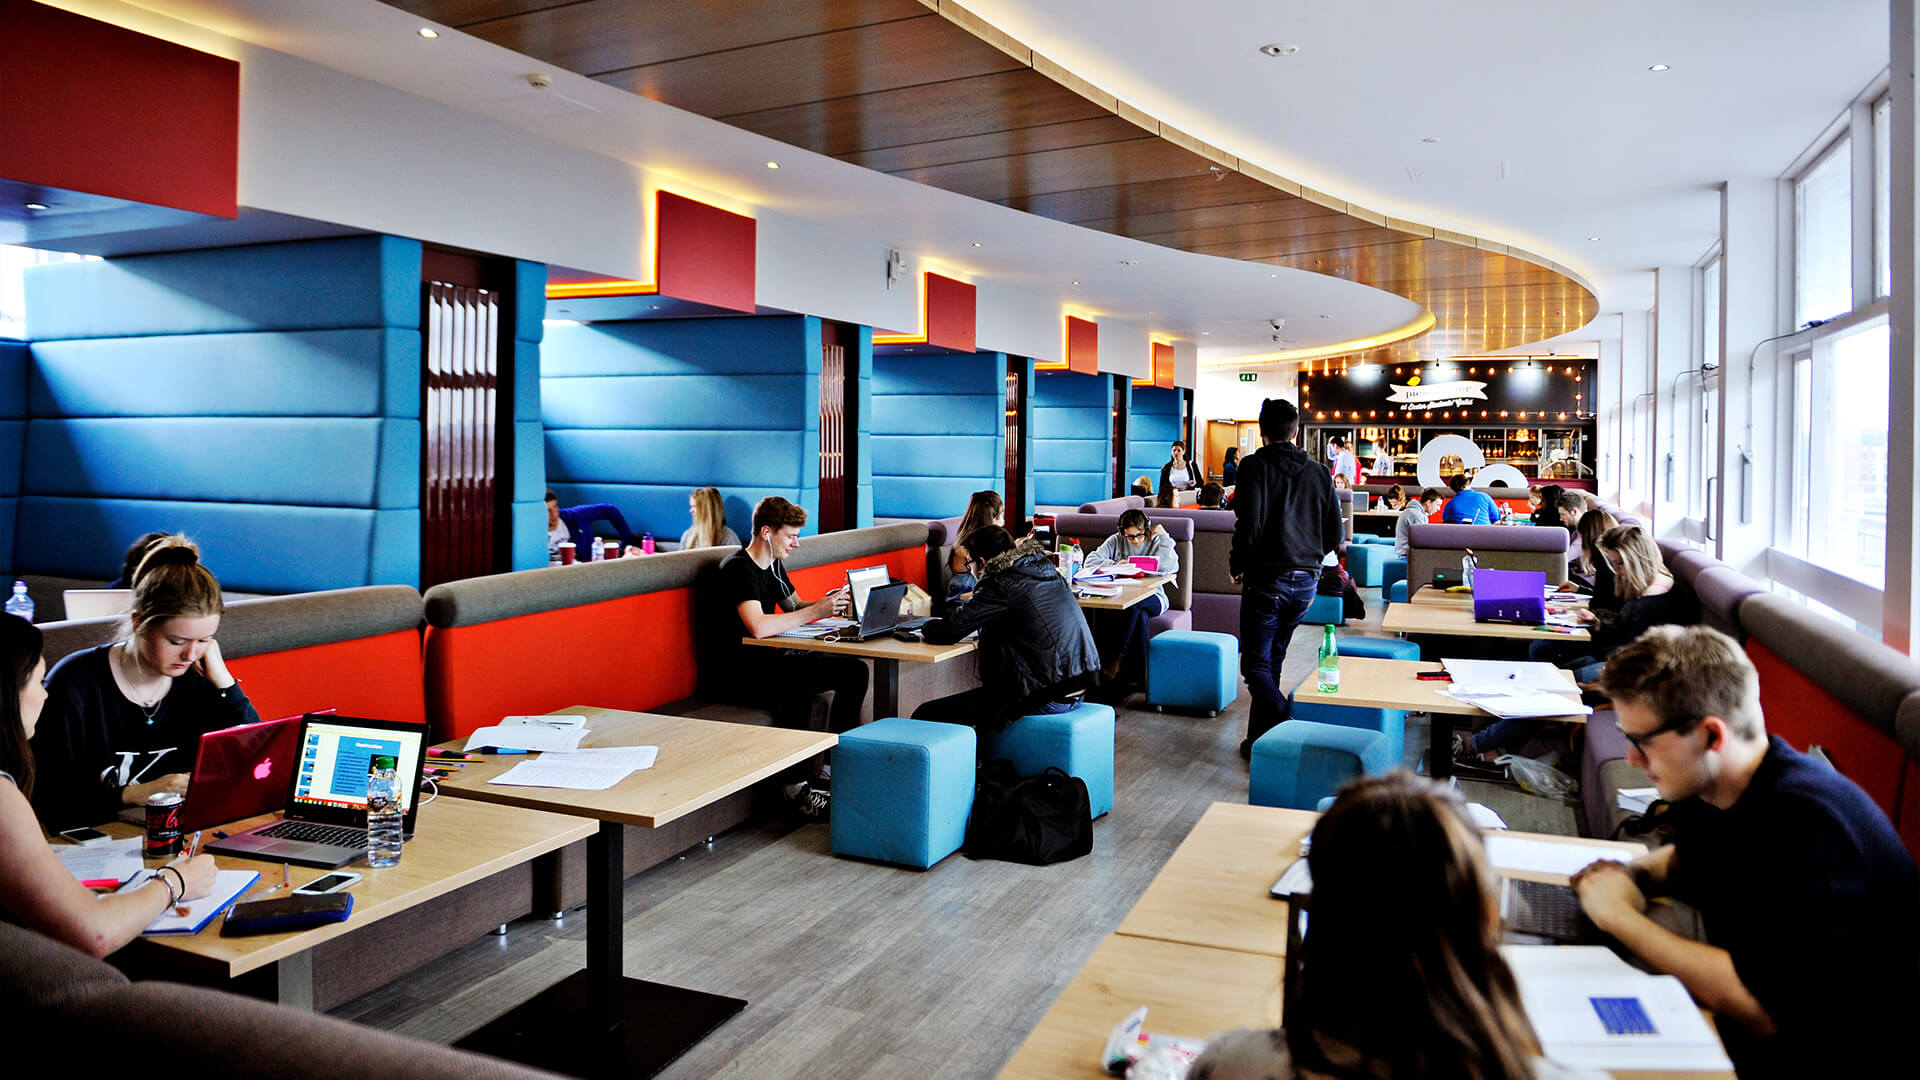 Students socialising and studying in campus cafe at University of Exeter